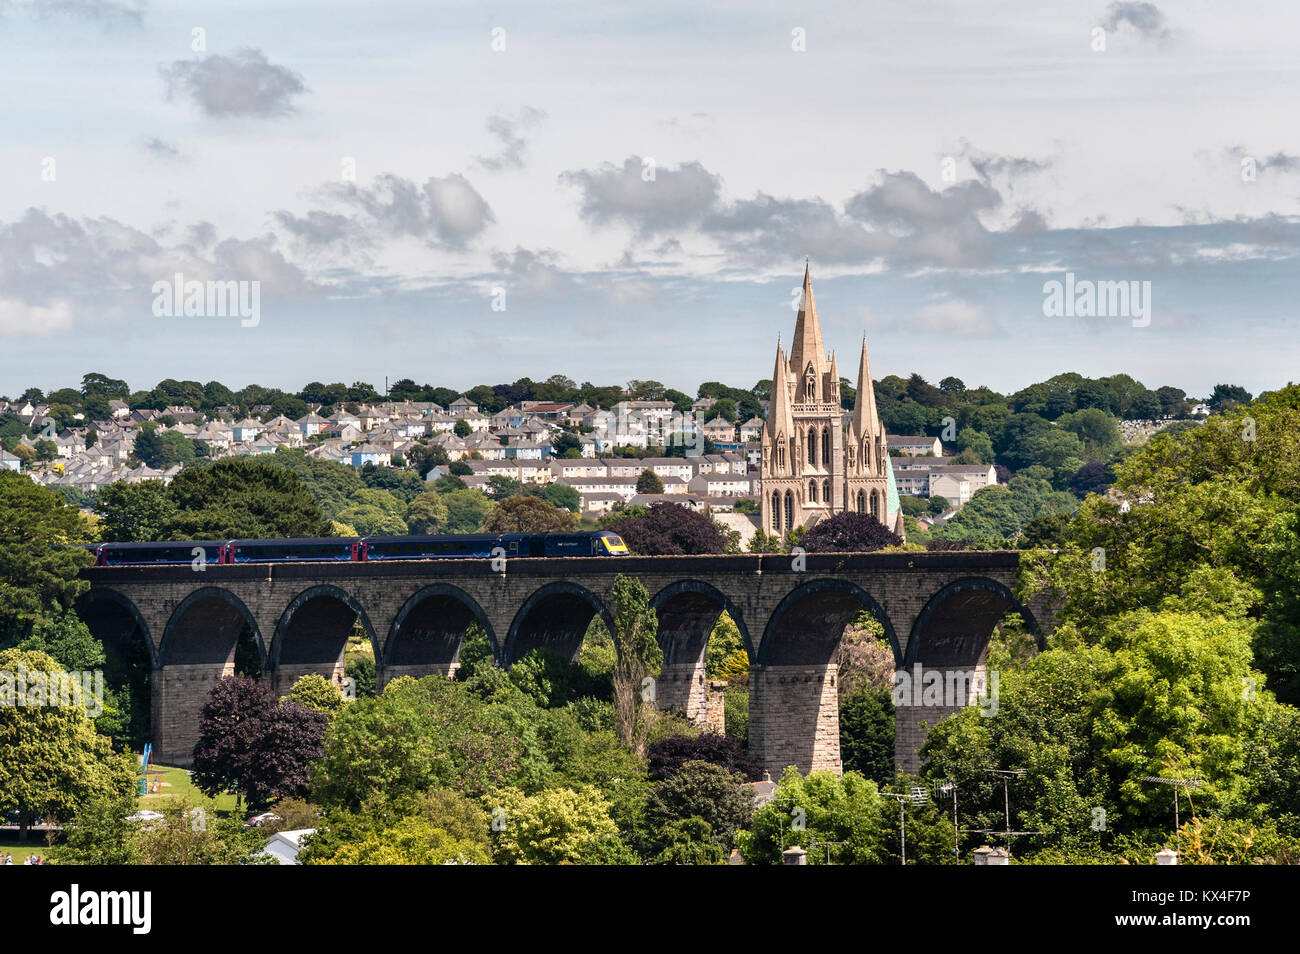 Truro, Cornwall, UK. A First Great Western train crosses Carvedras Viaduct (1902) in front of Truro Cathedral. The - Stock Image